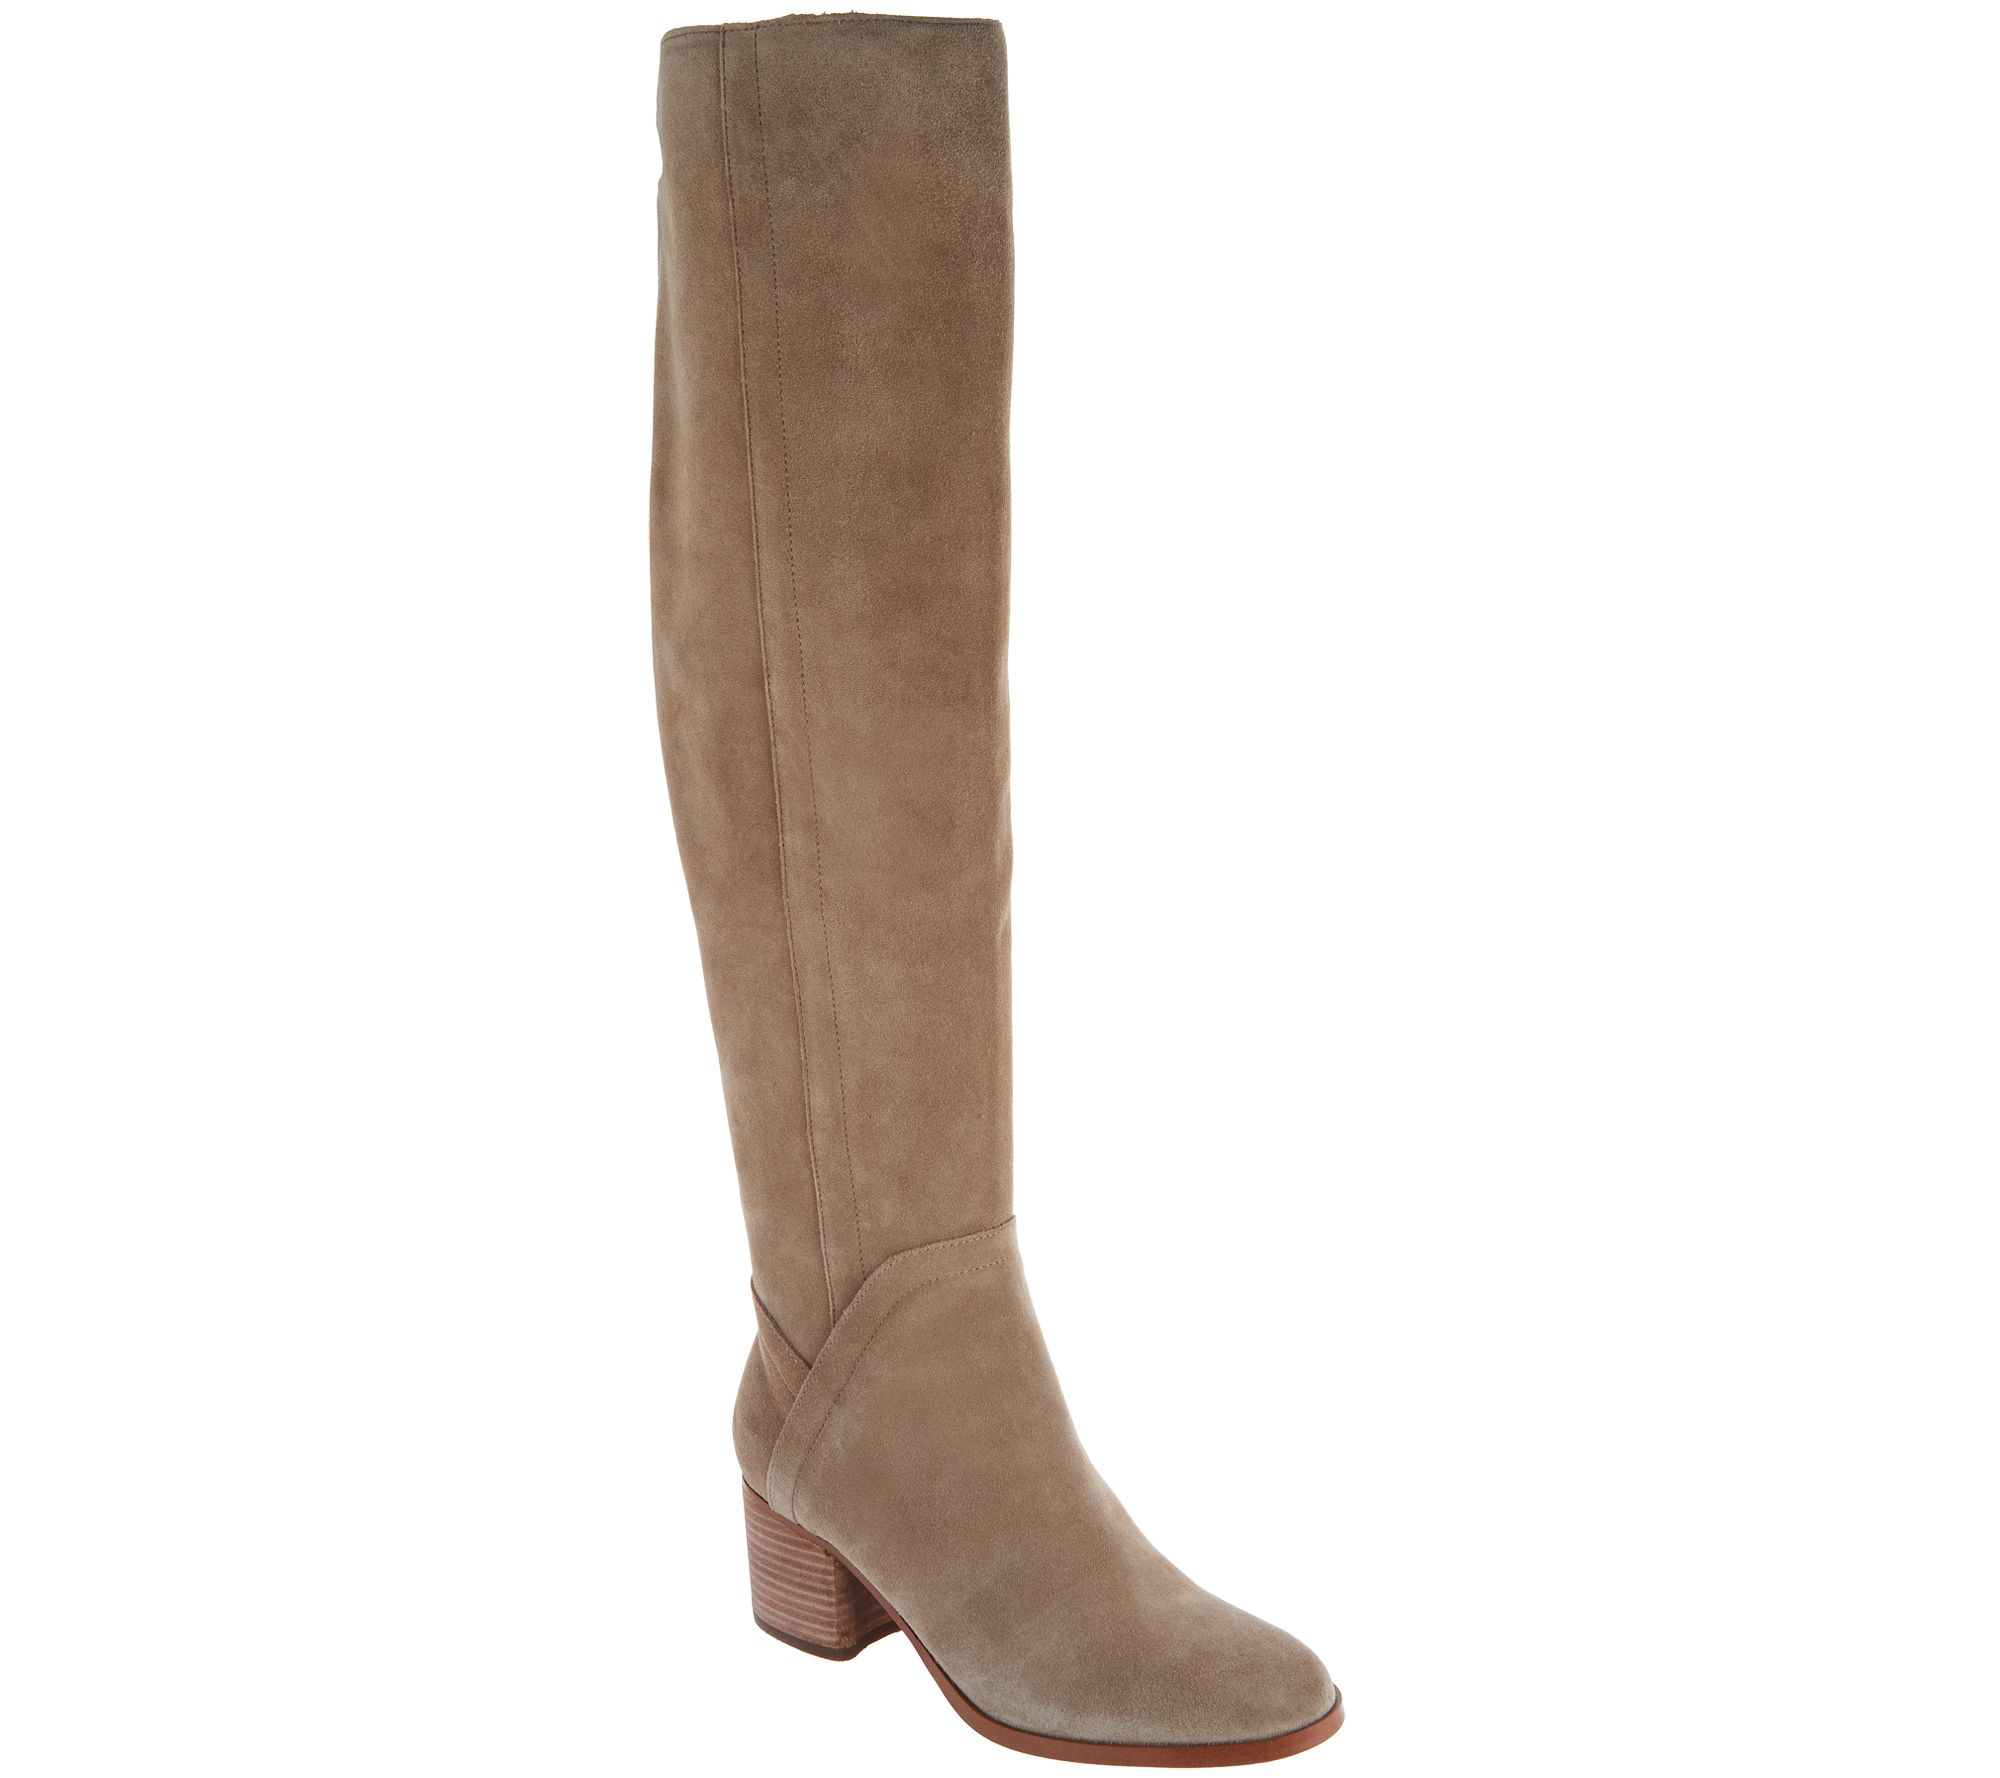 62aa7ef716e Marc Fisher Medium Calf Suede Over-the-Knee Boots - Elanie - Page 1 — QVC .com